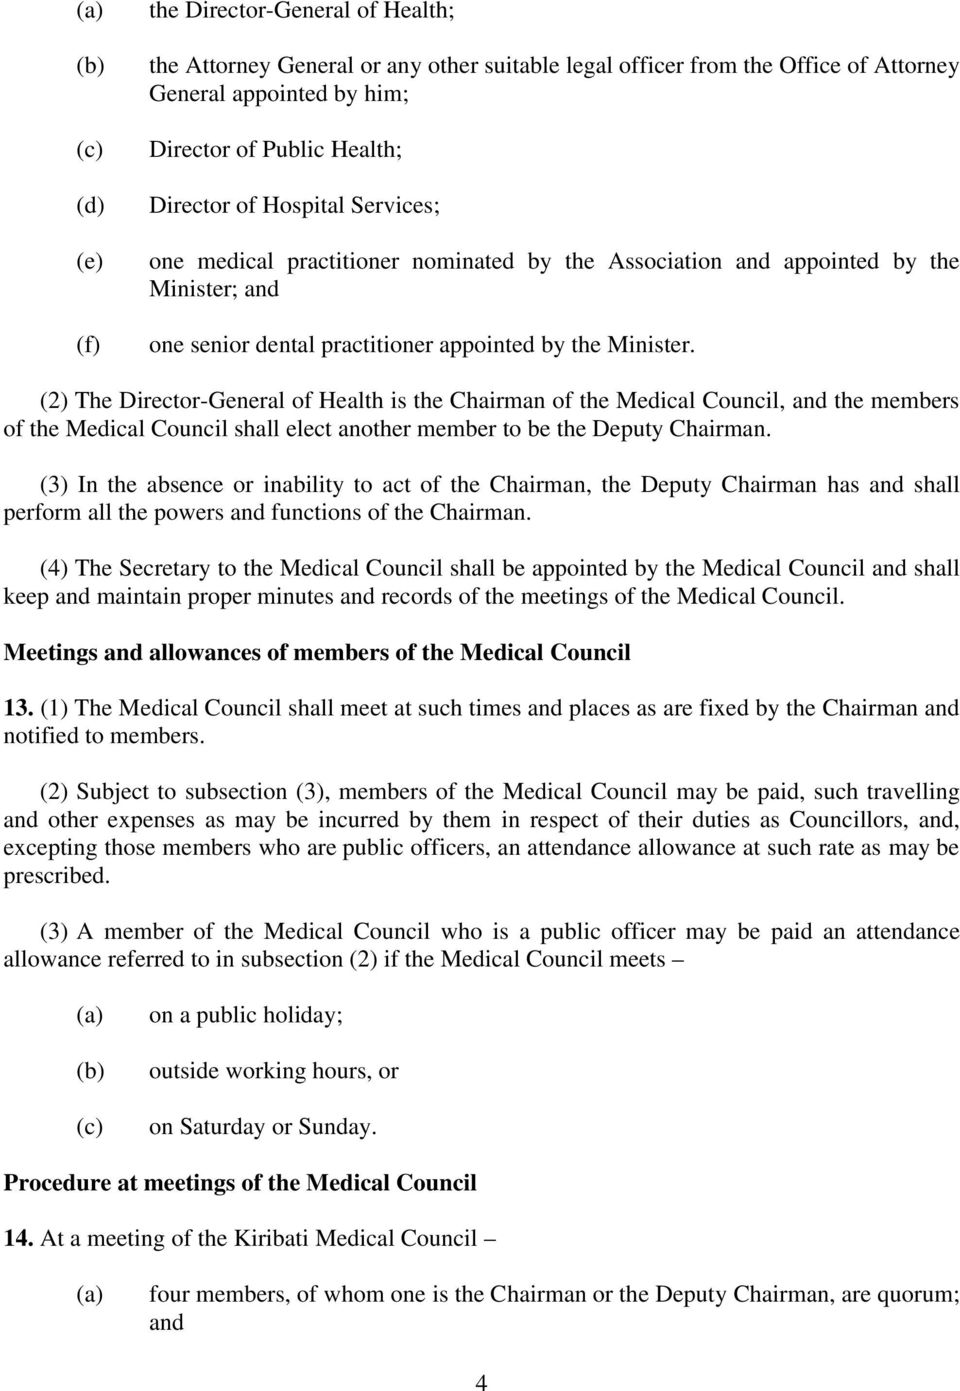 (2) The Director-General of Health is the Chairman of the Medical Council, and the members of the Medical Council shall elect another member to be the Deputy Chairman.